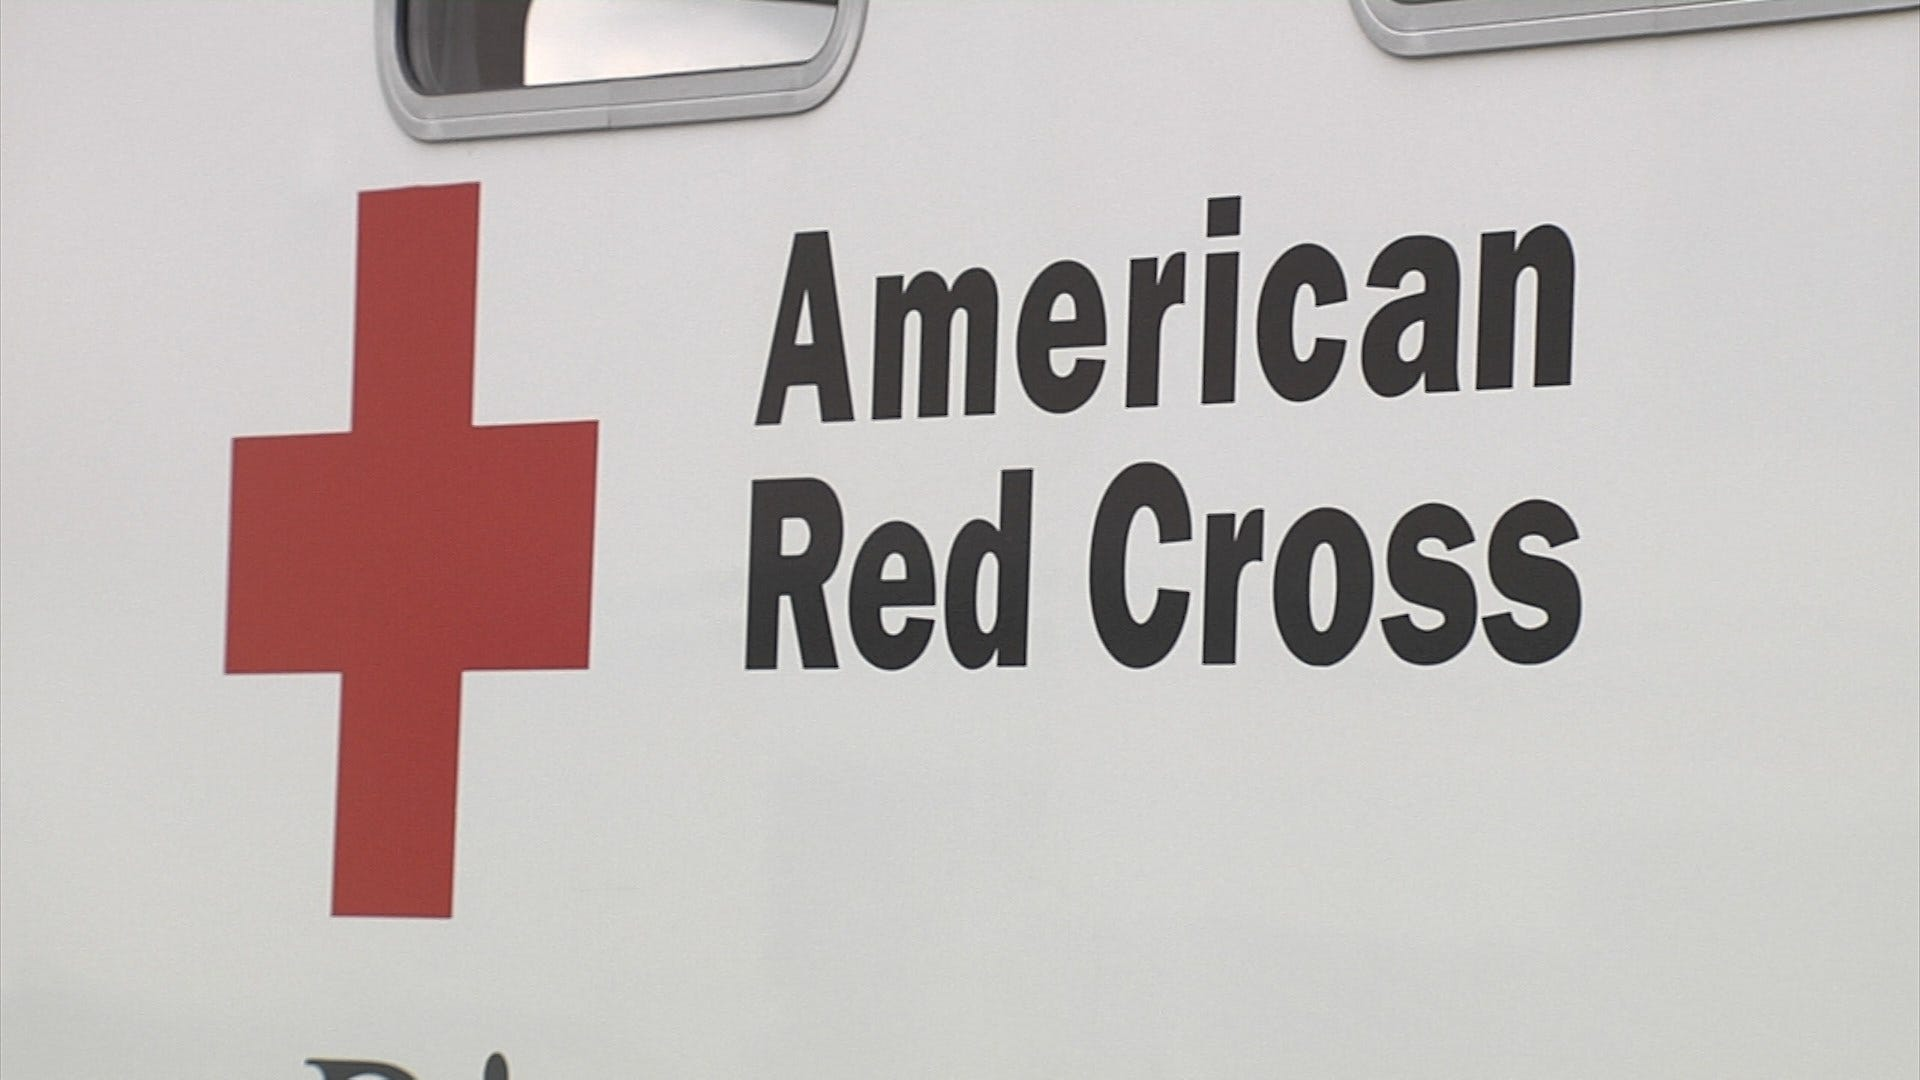 Red Cross Vehicle